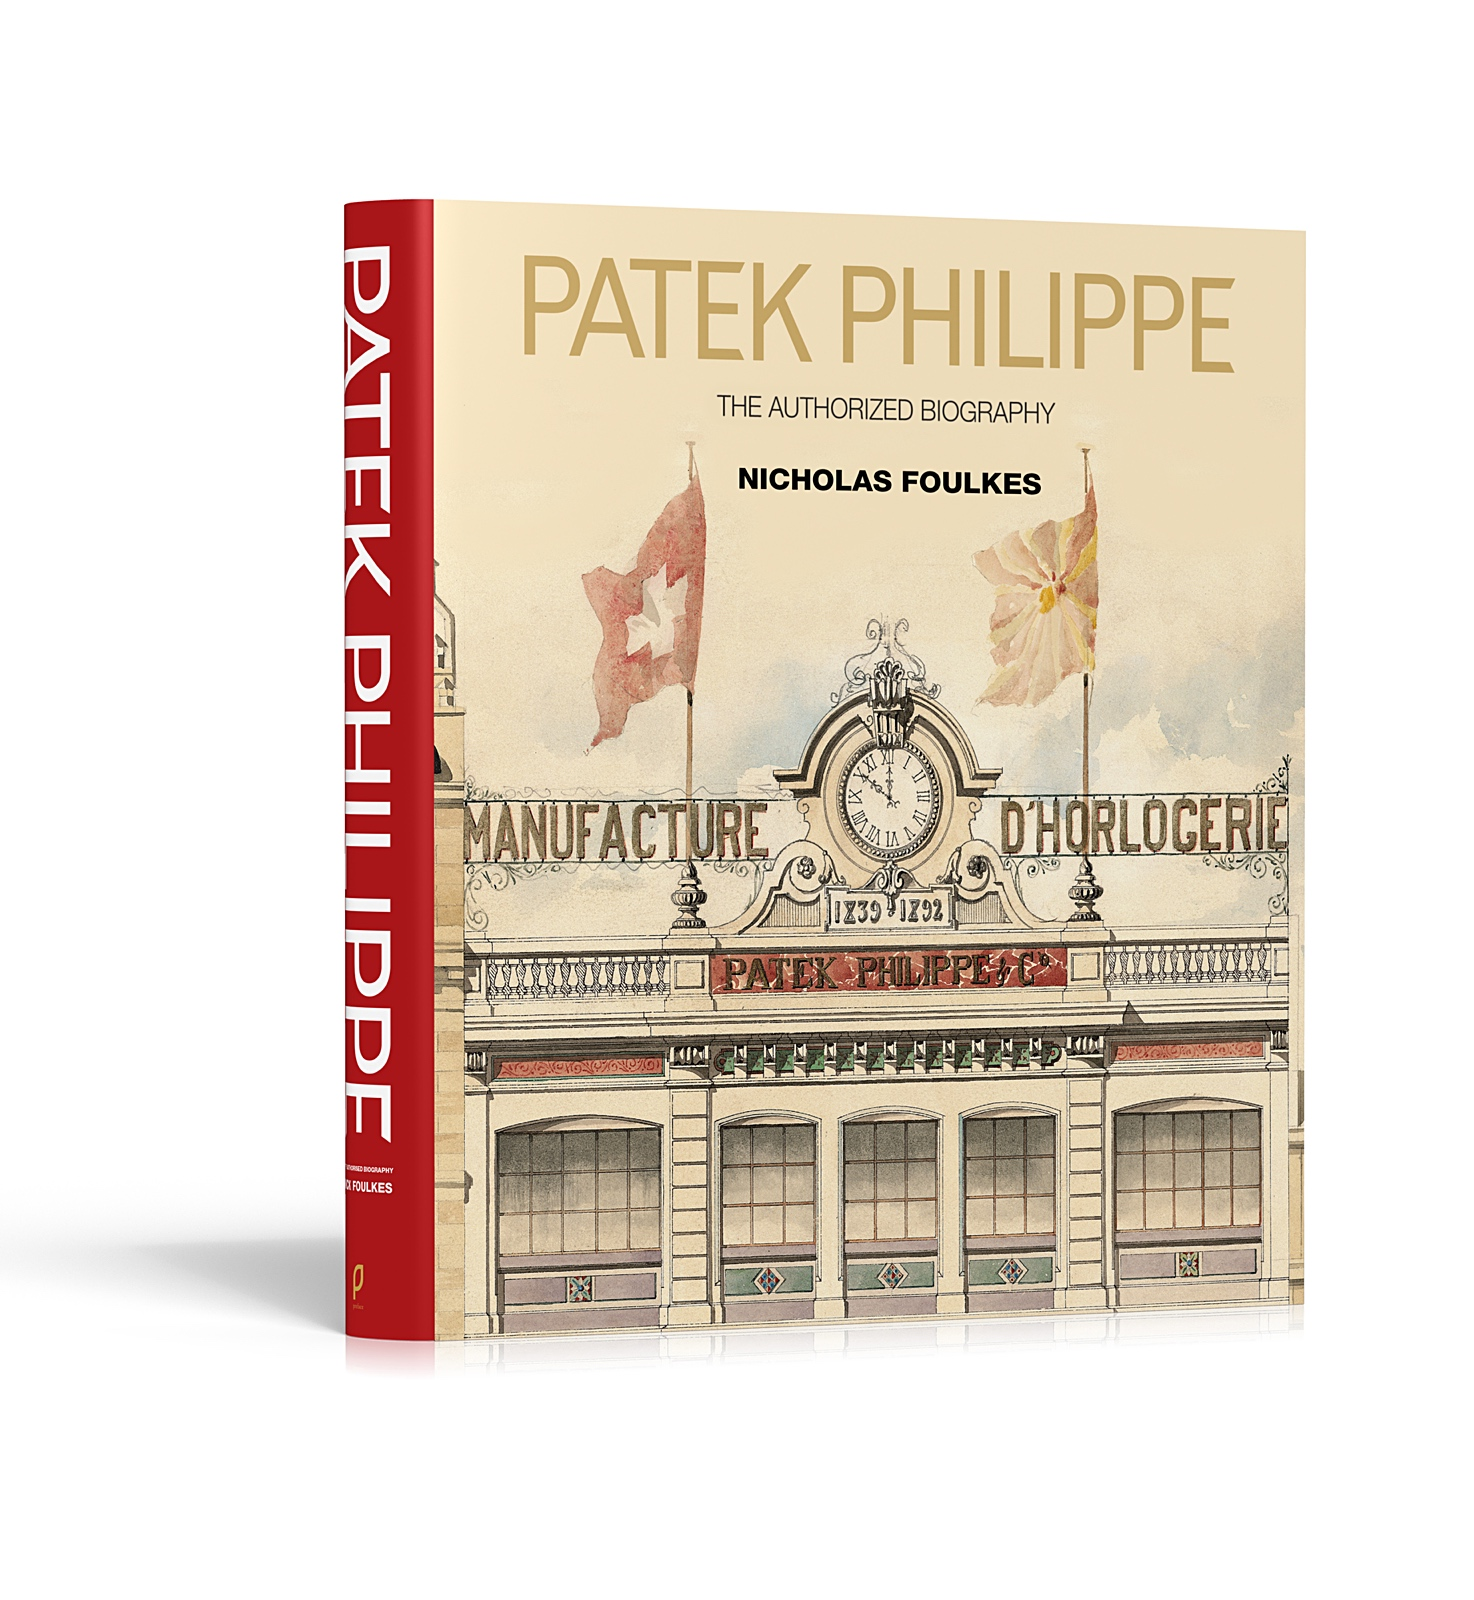 Patek Philippe The Authorized Biography - book